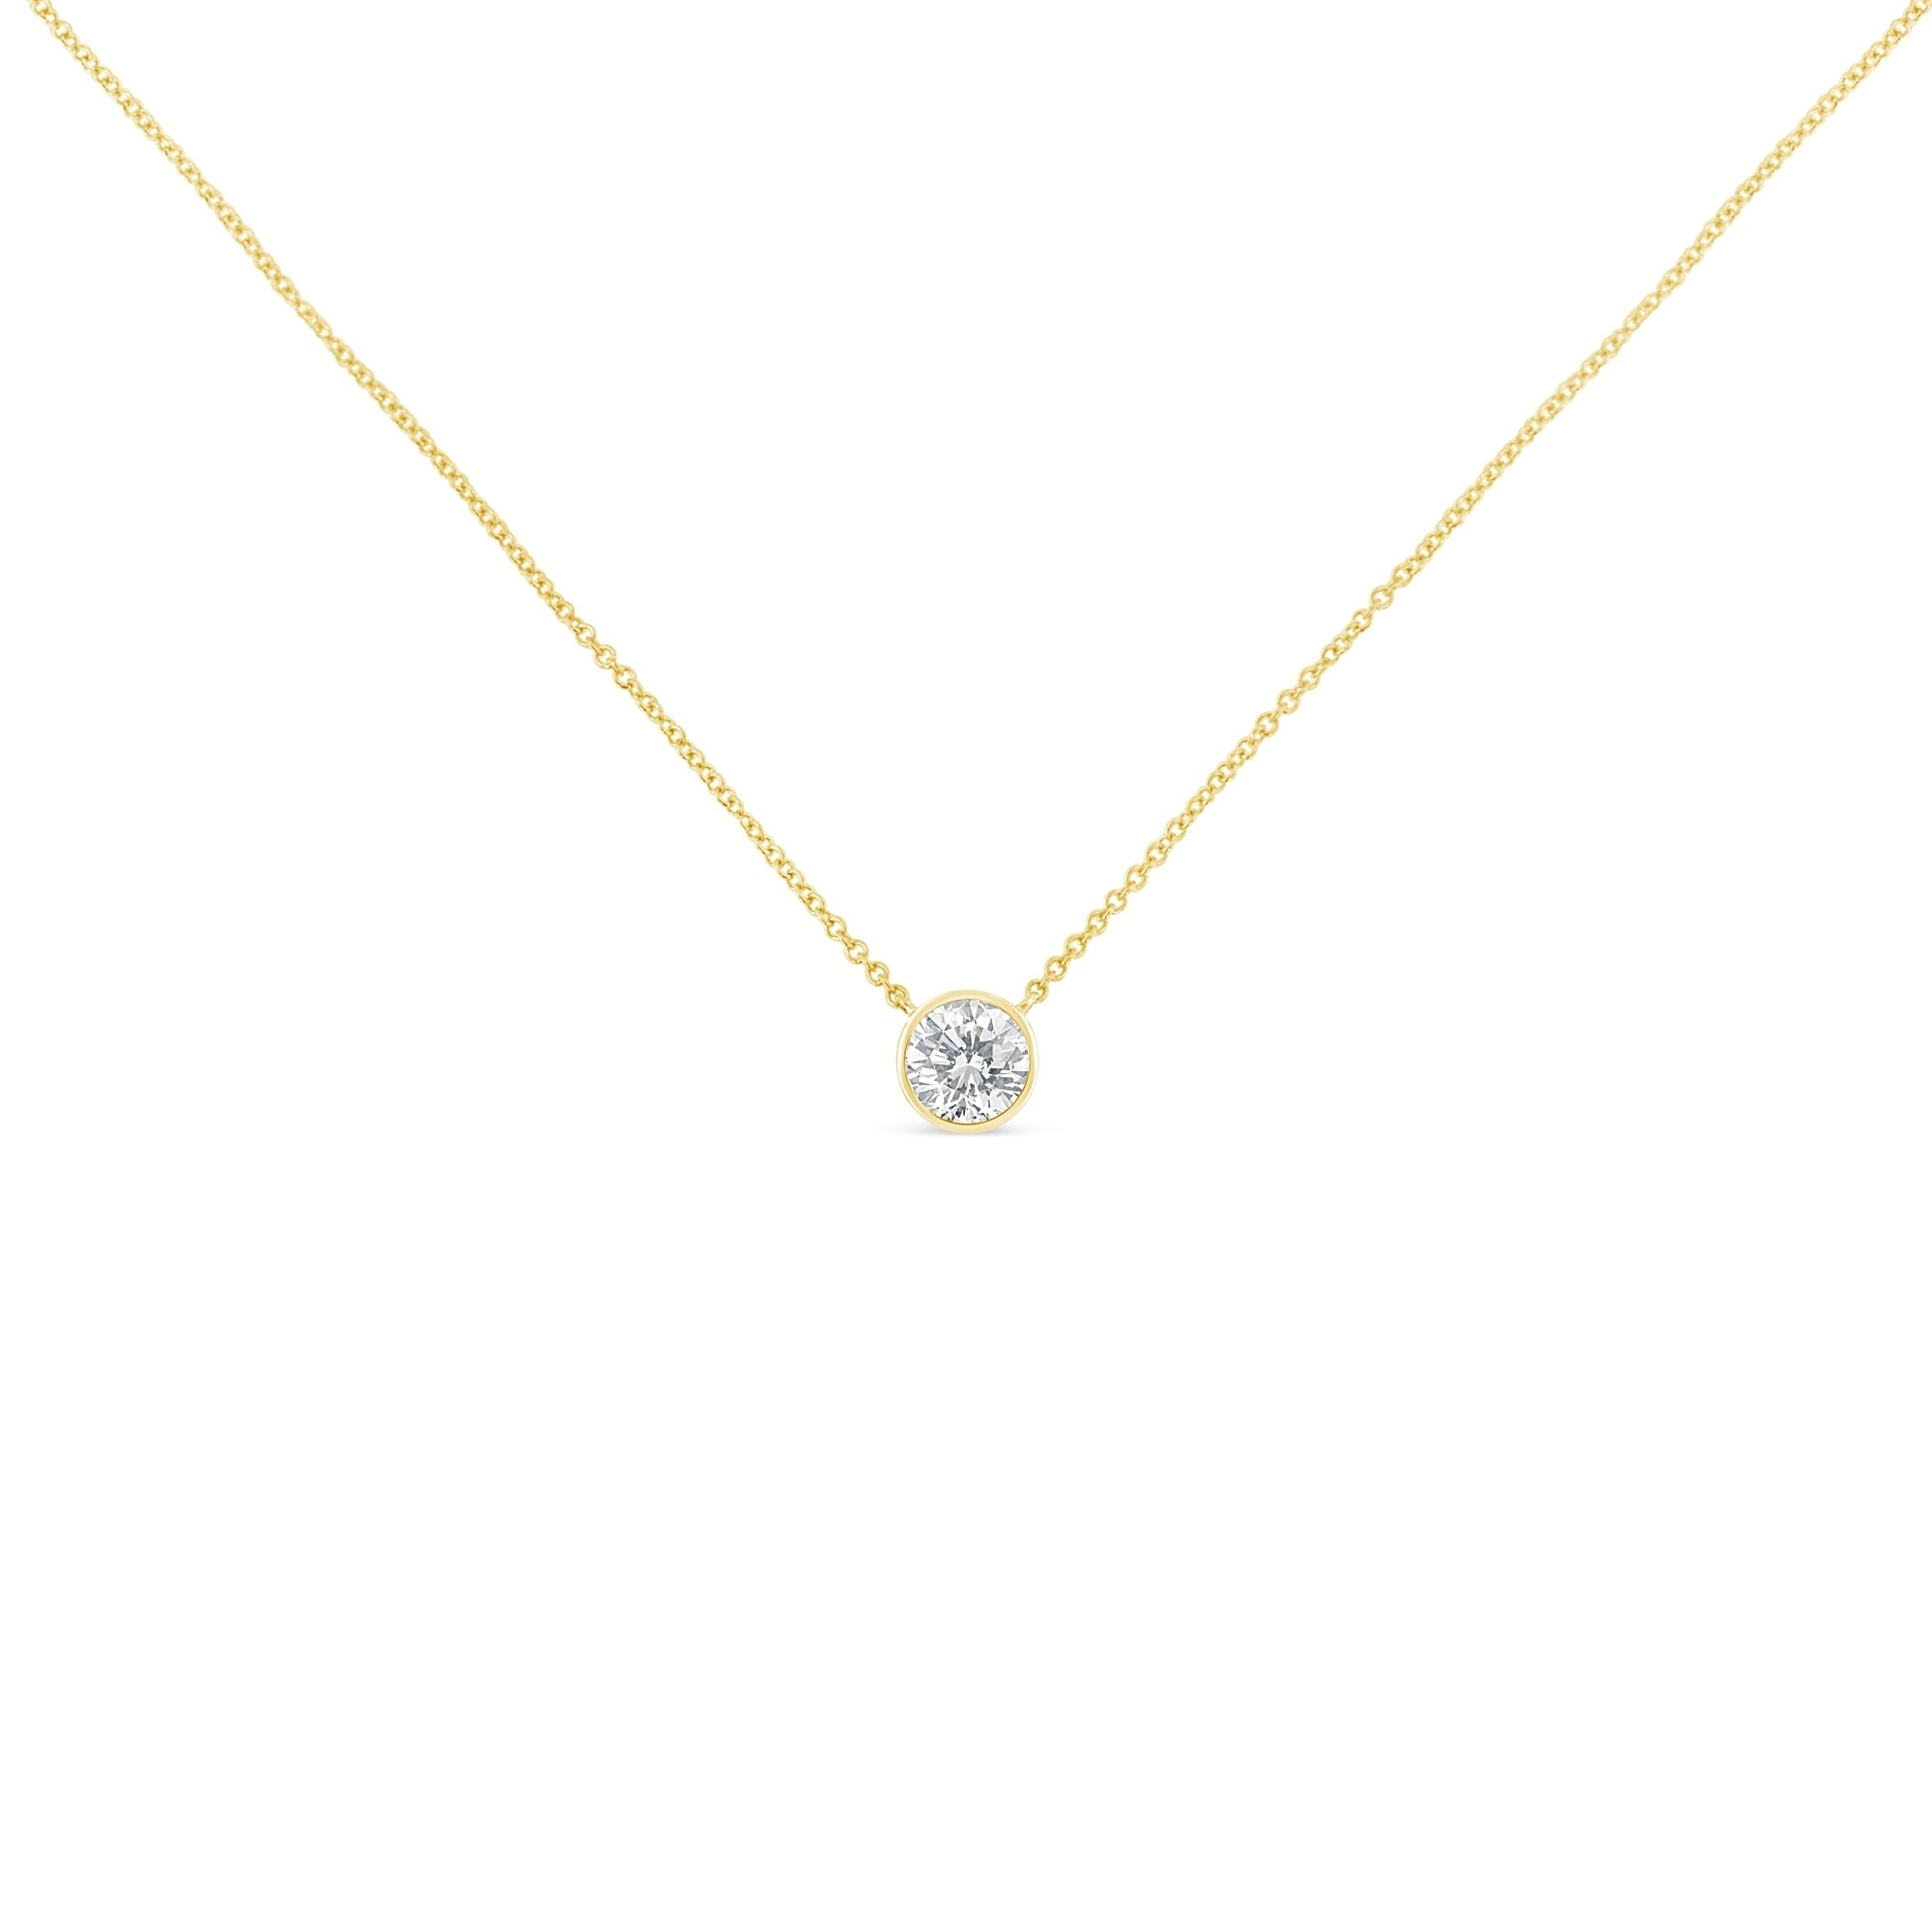 Shop 10k gold 01ct tdw bezel set diamond solitaire pendant tdw bezel set diamond solitaire pendant necklaceh isi2 i1 on sale free shipping today overstock 12816178 aloadofball Image collections